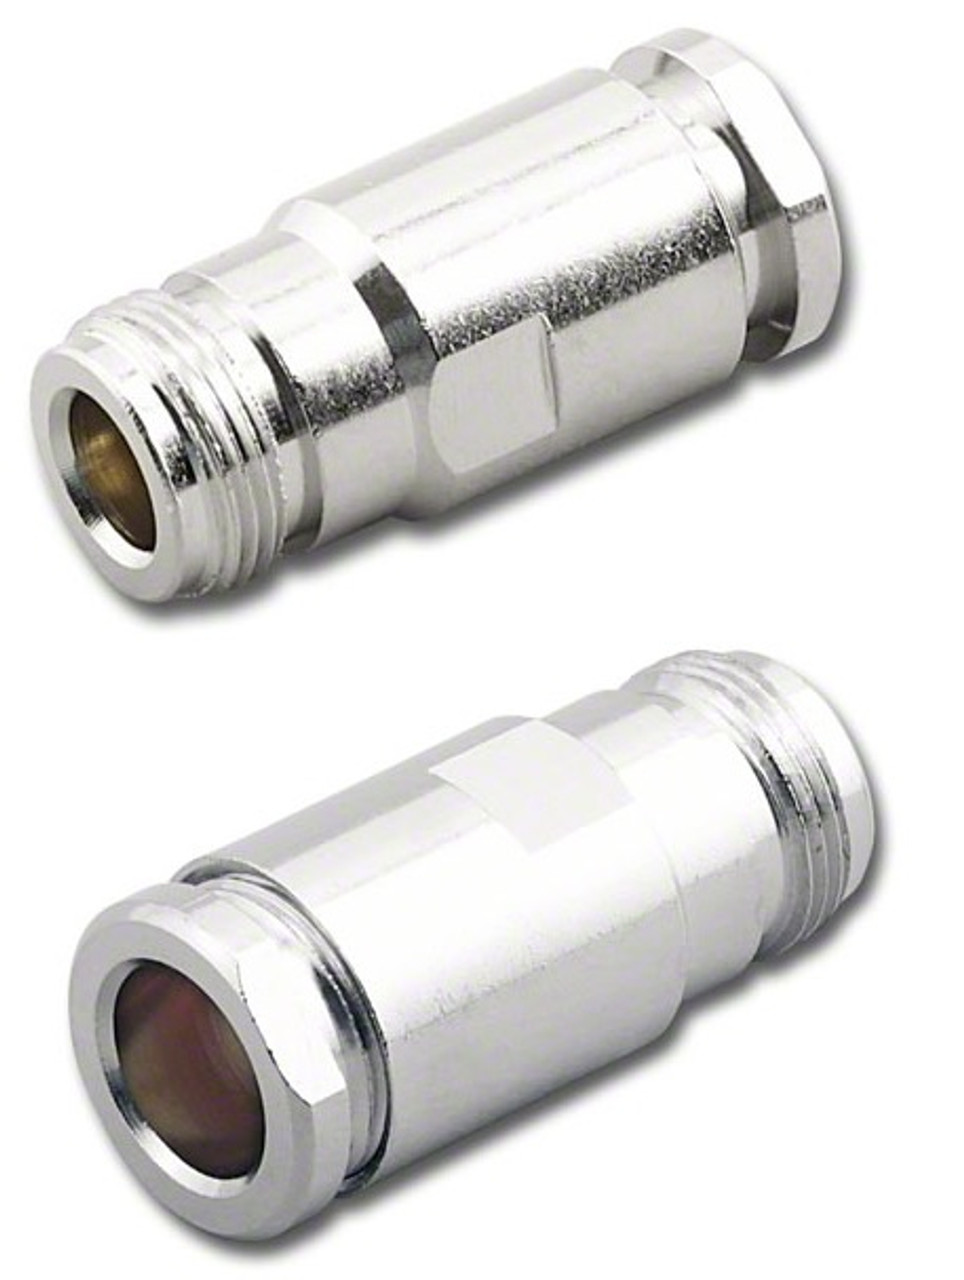 N-Female Coaxial Cable Connector for LMR400 - RFN-7687-400